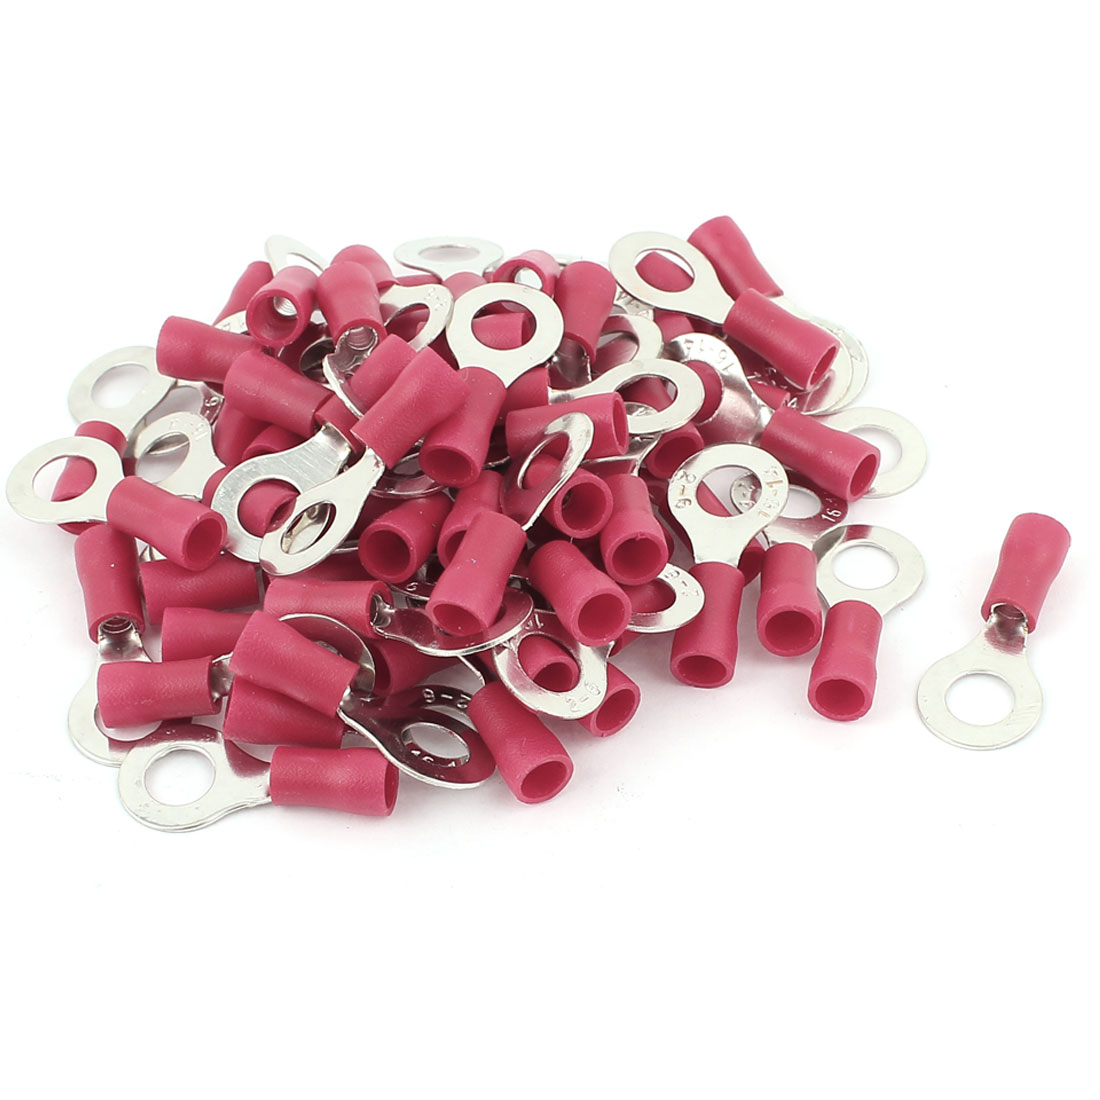 60 Pcs PVC Insulated Ring Crimp Electric Cable Terminals Connector AWG 16-14 Red